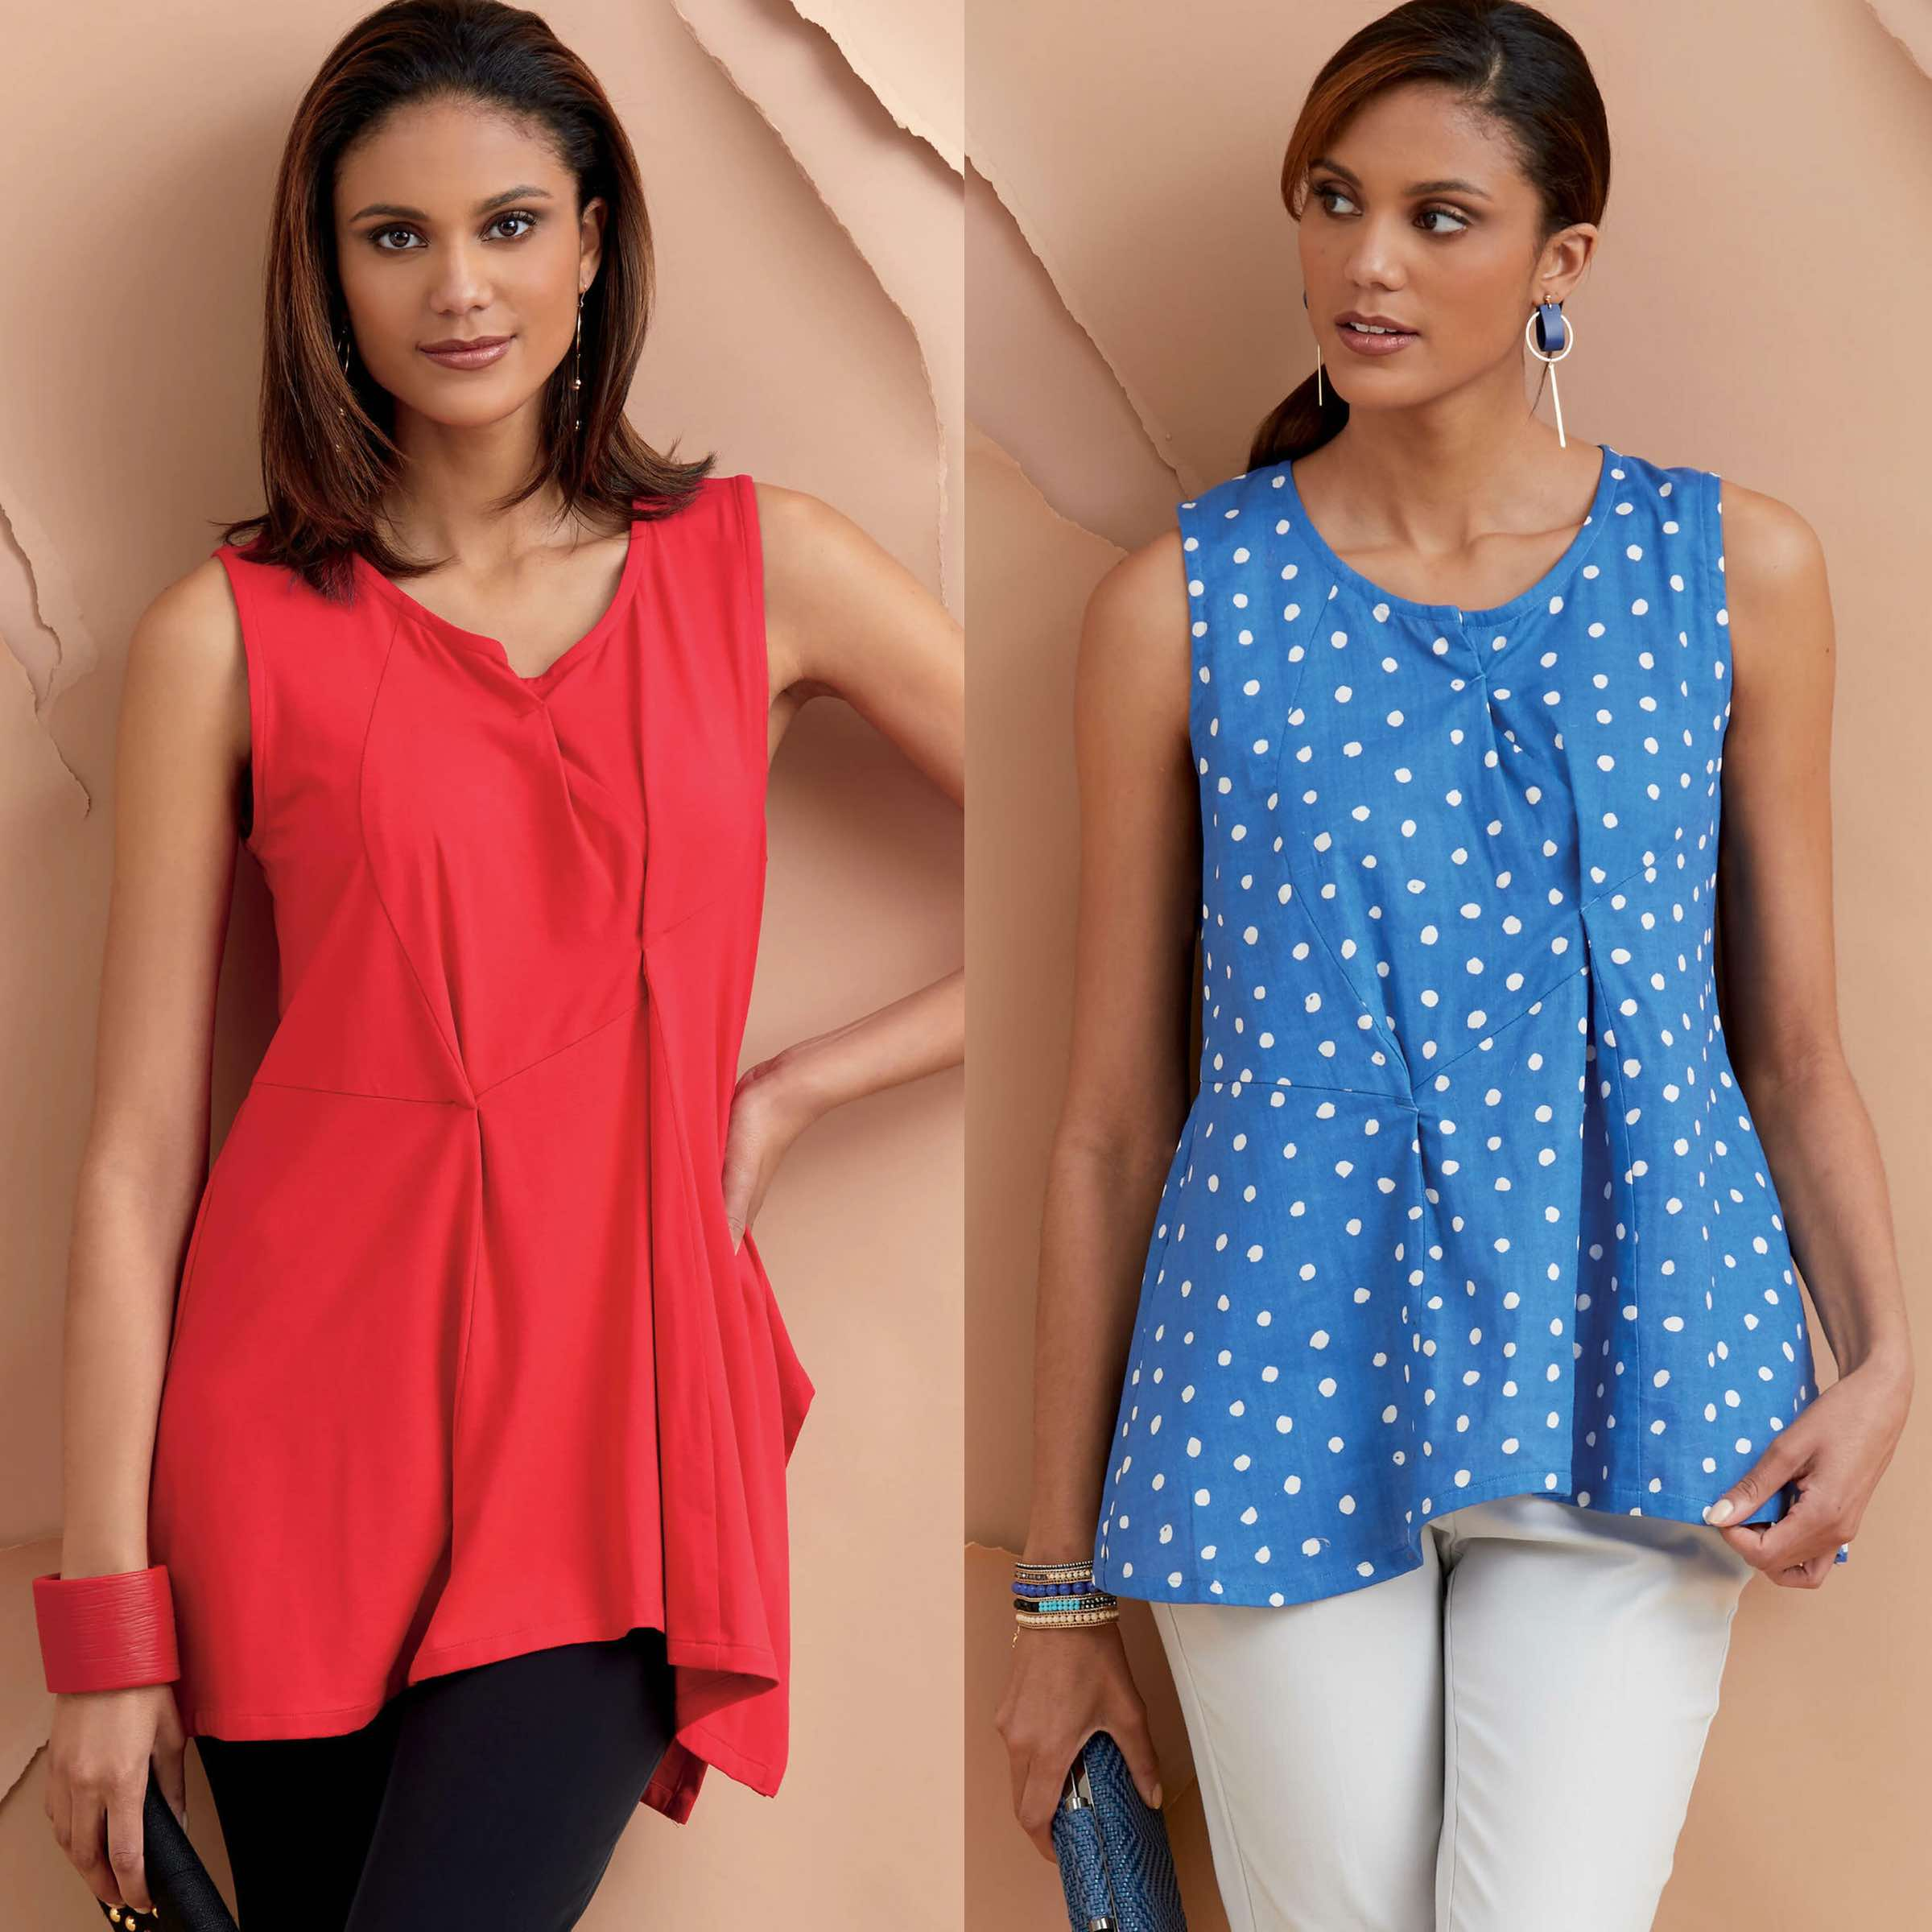 Vogue Patterns fashion designer Marcy Tilton shares sewing tips for her Tuck Tank Tunic pattern V9317 available from Vogue Patterns.